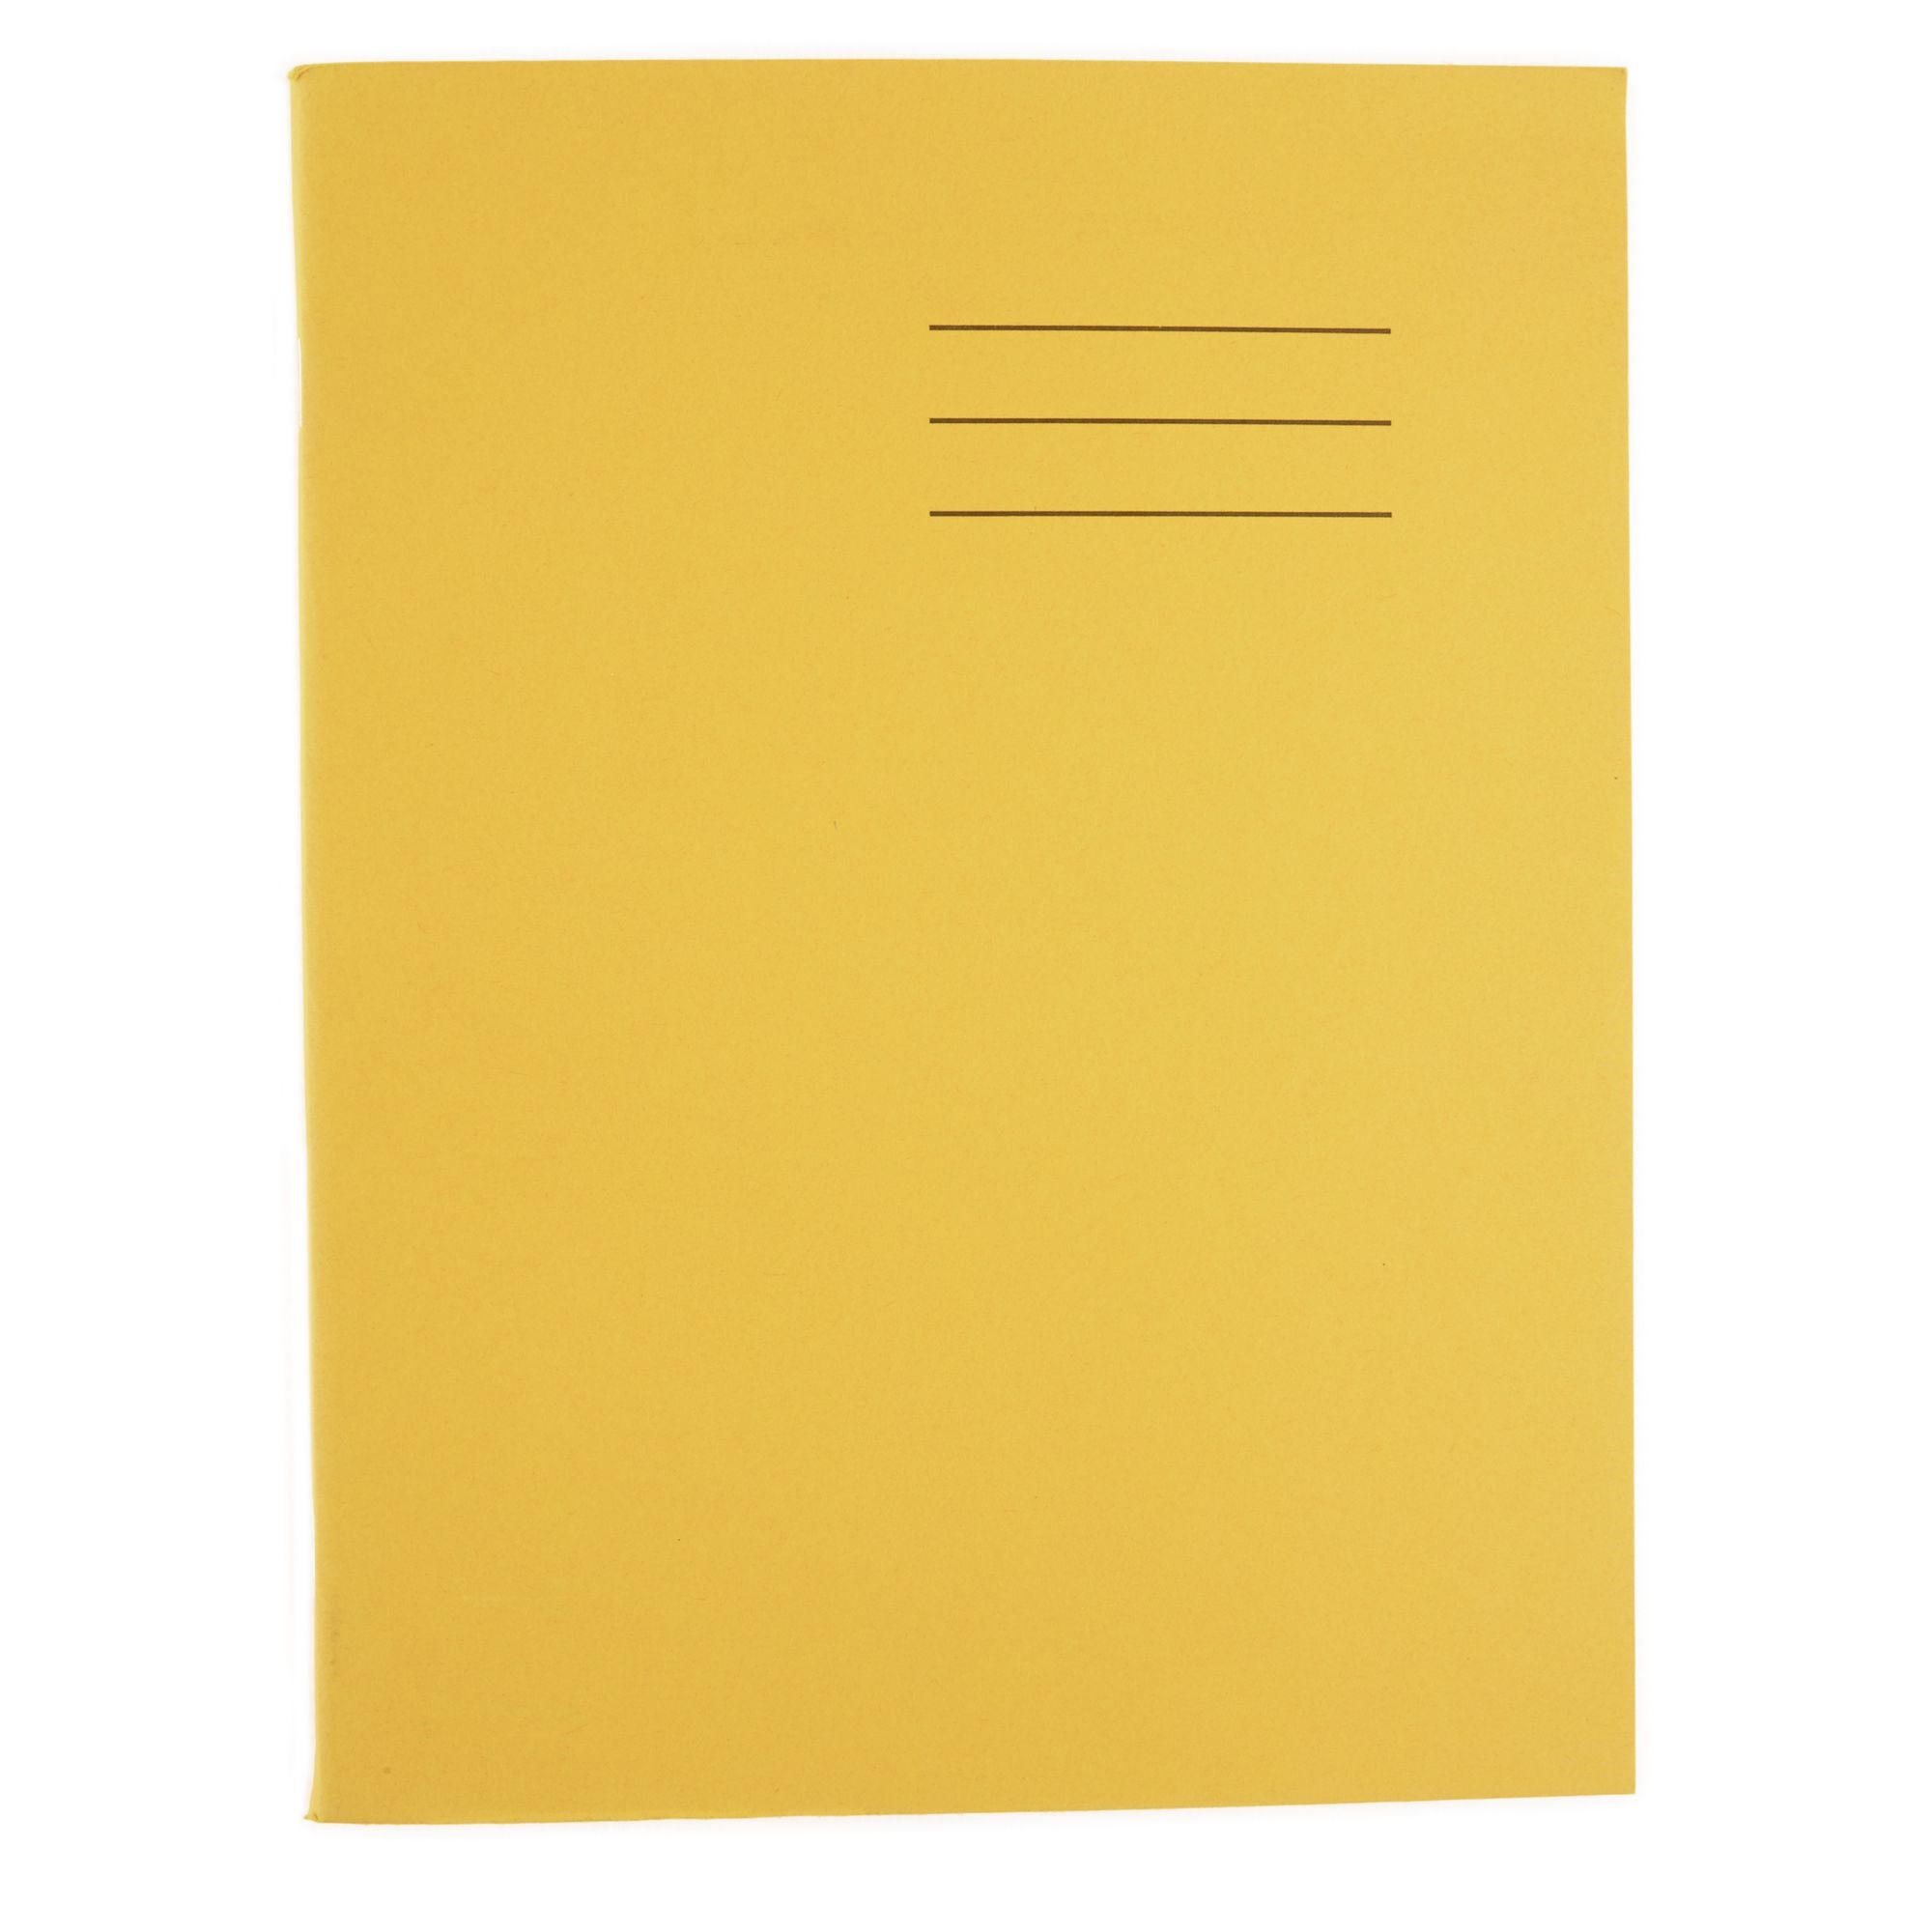 A4 Exercise Book 64 Page 10mm Squared Yellow (Pack of 100)